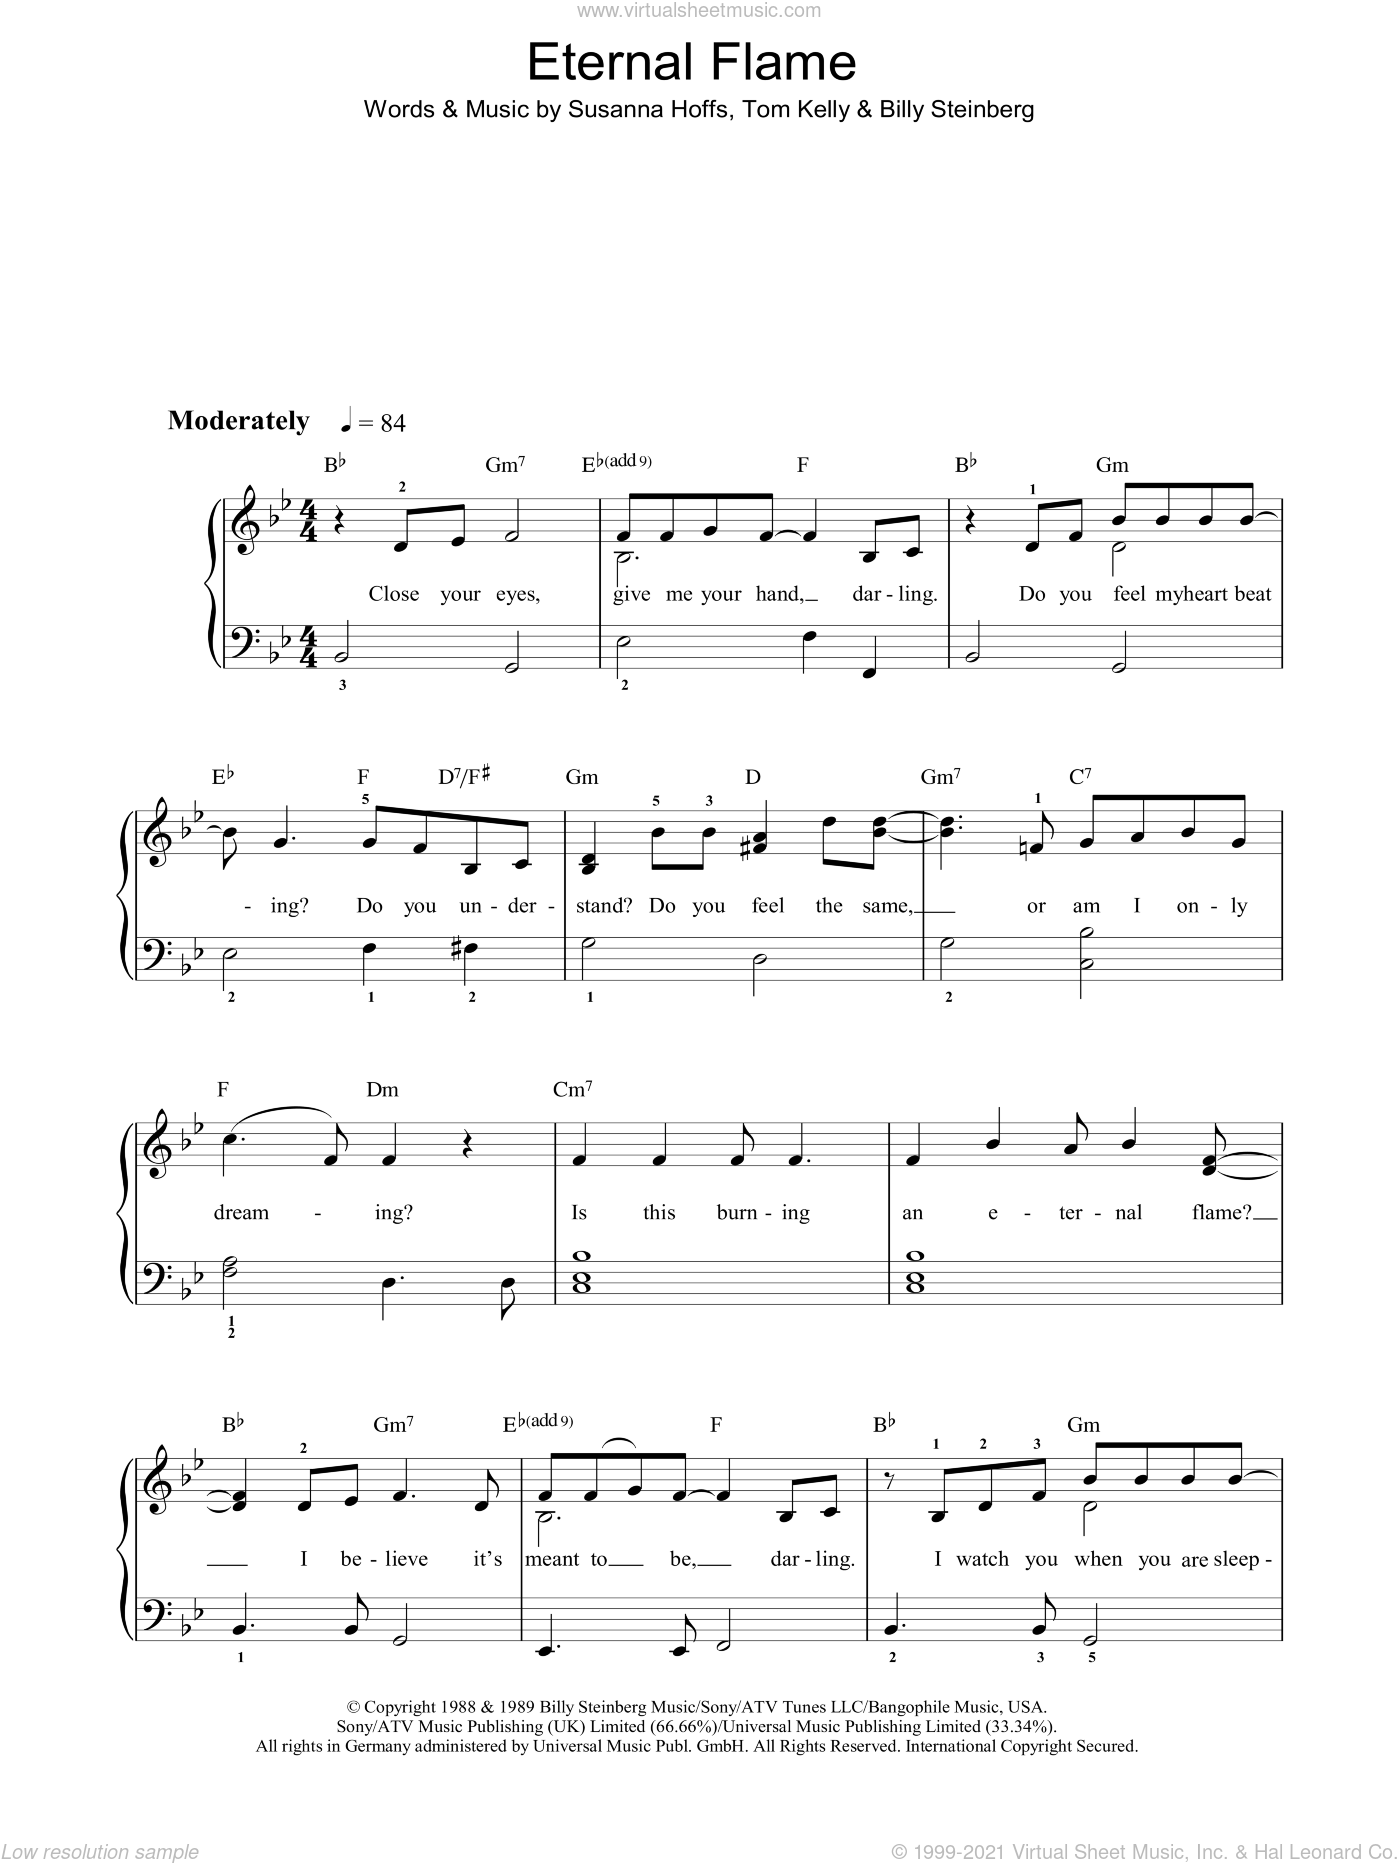 Eternal Flame sheet music for piano solo by The Bangles, Billy Steinberg, Susanna Hoffs and Tom Kelly, easy skill level